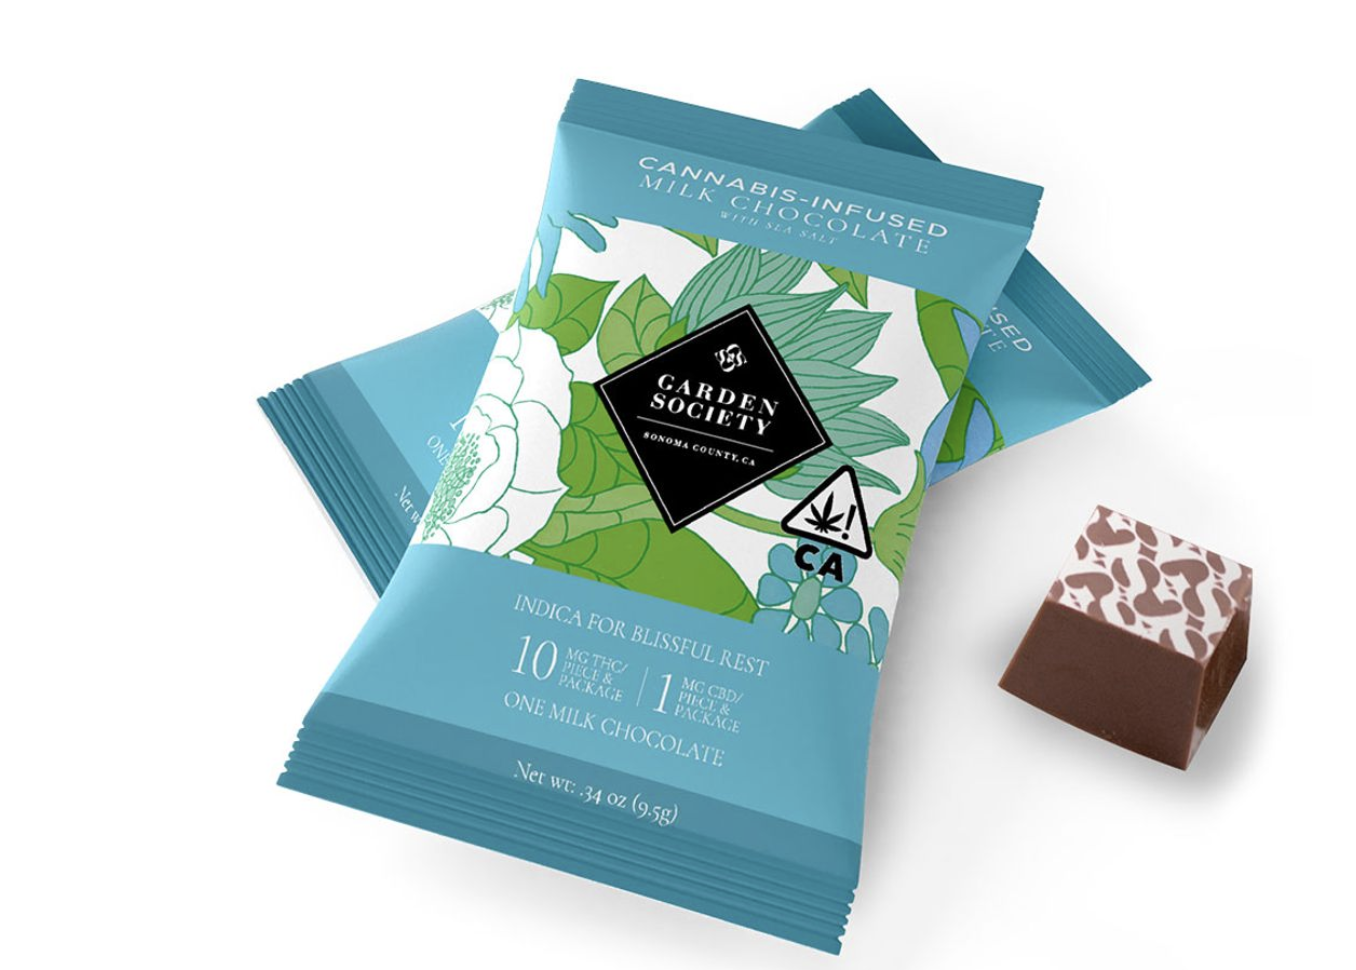 Garden Society's Cannabis Infused Chocolates